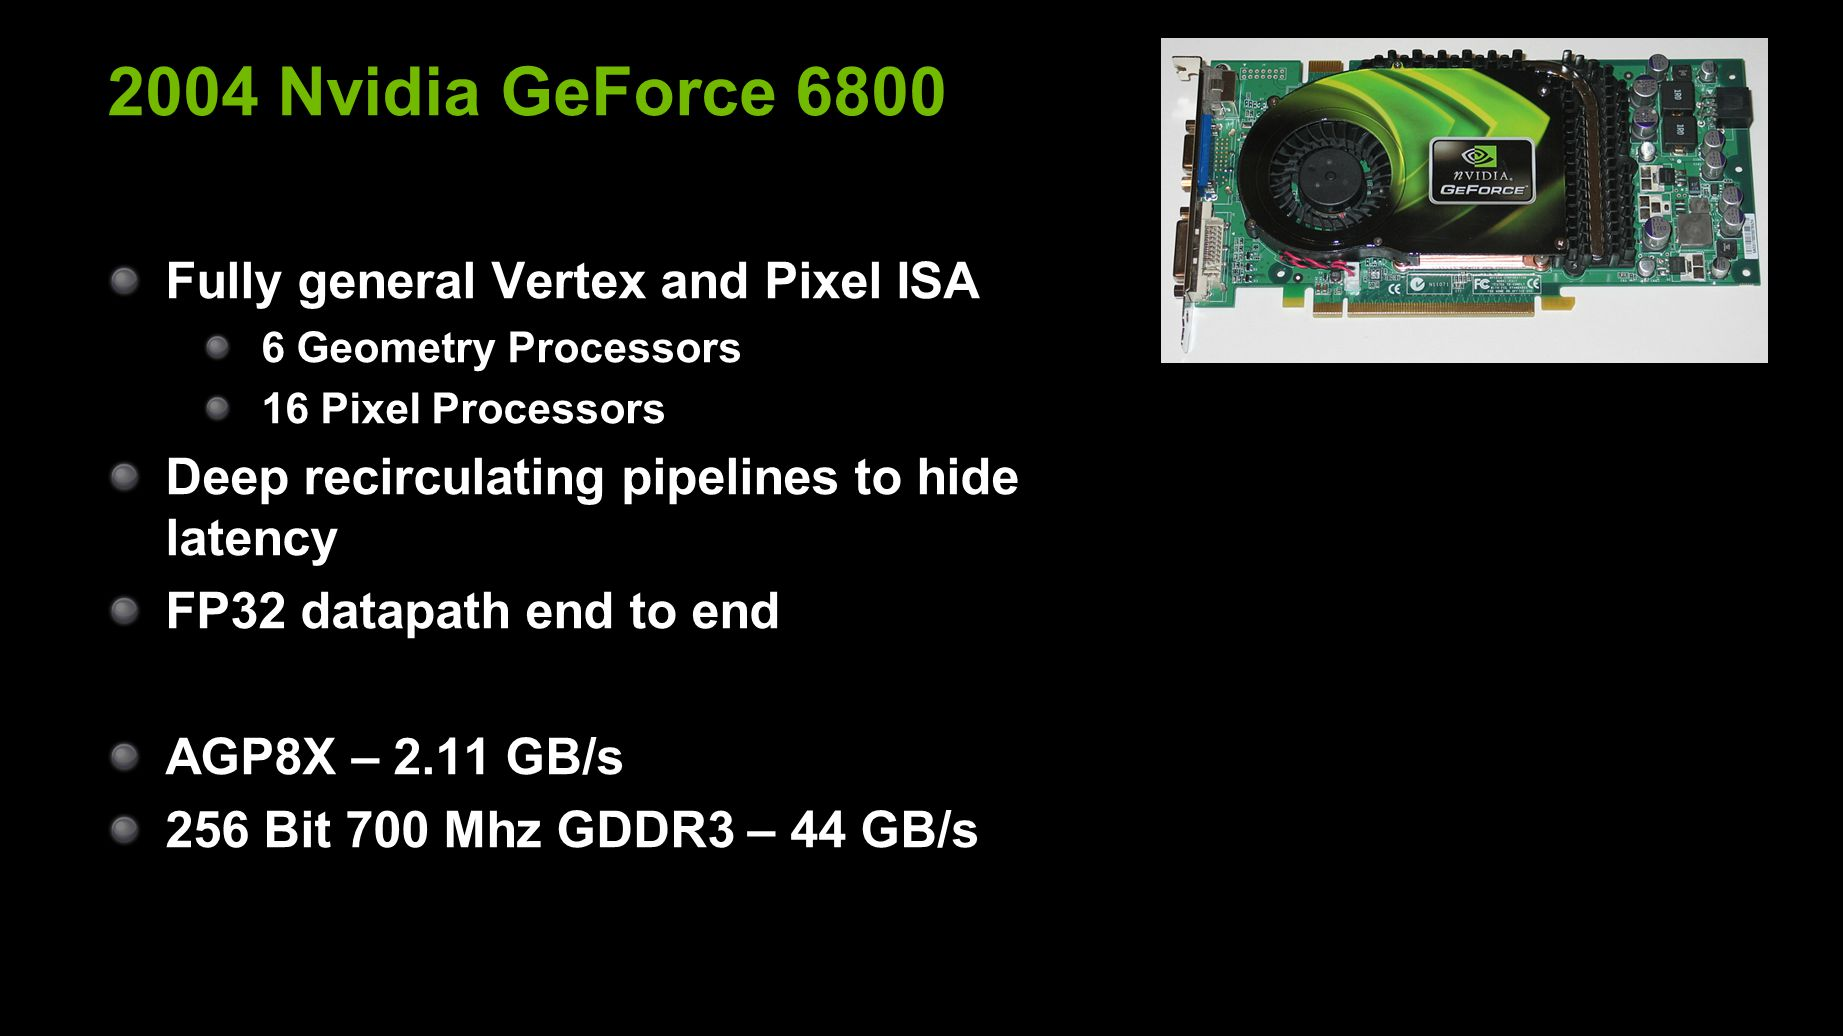 2004 Nvidia GeForce 6800 Fully general Vertex and Pixel ISA 6 Geometry Processors 16 Pixel Processors Deep recirculating pipelines to hide latency FP32 datapath end to end AGP8X – 2.11 GB/s 256 Bit 700 Mhz GDDR3 – 44 GB/s